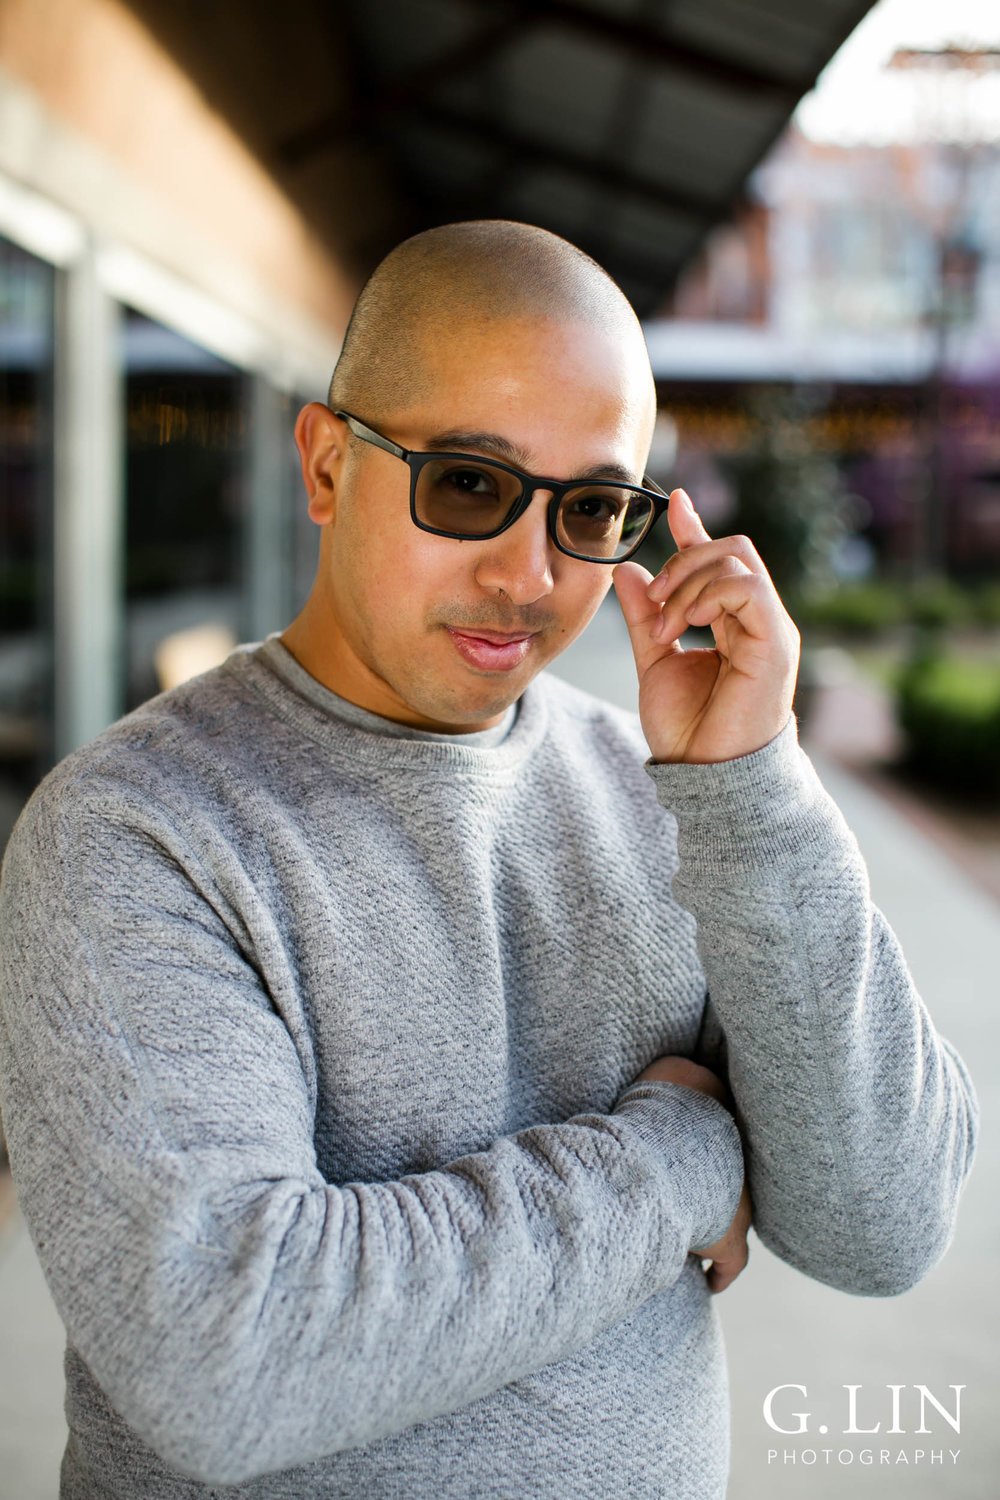 Durham Family Photographer | G. Lin Photography | Man in front of store holding sunglasses